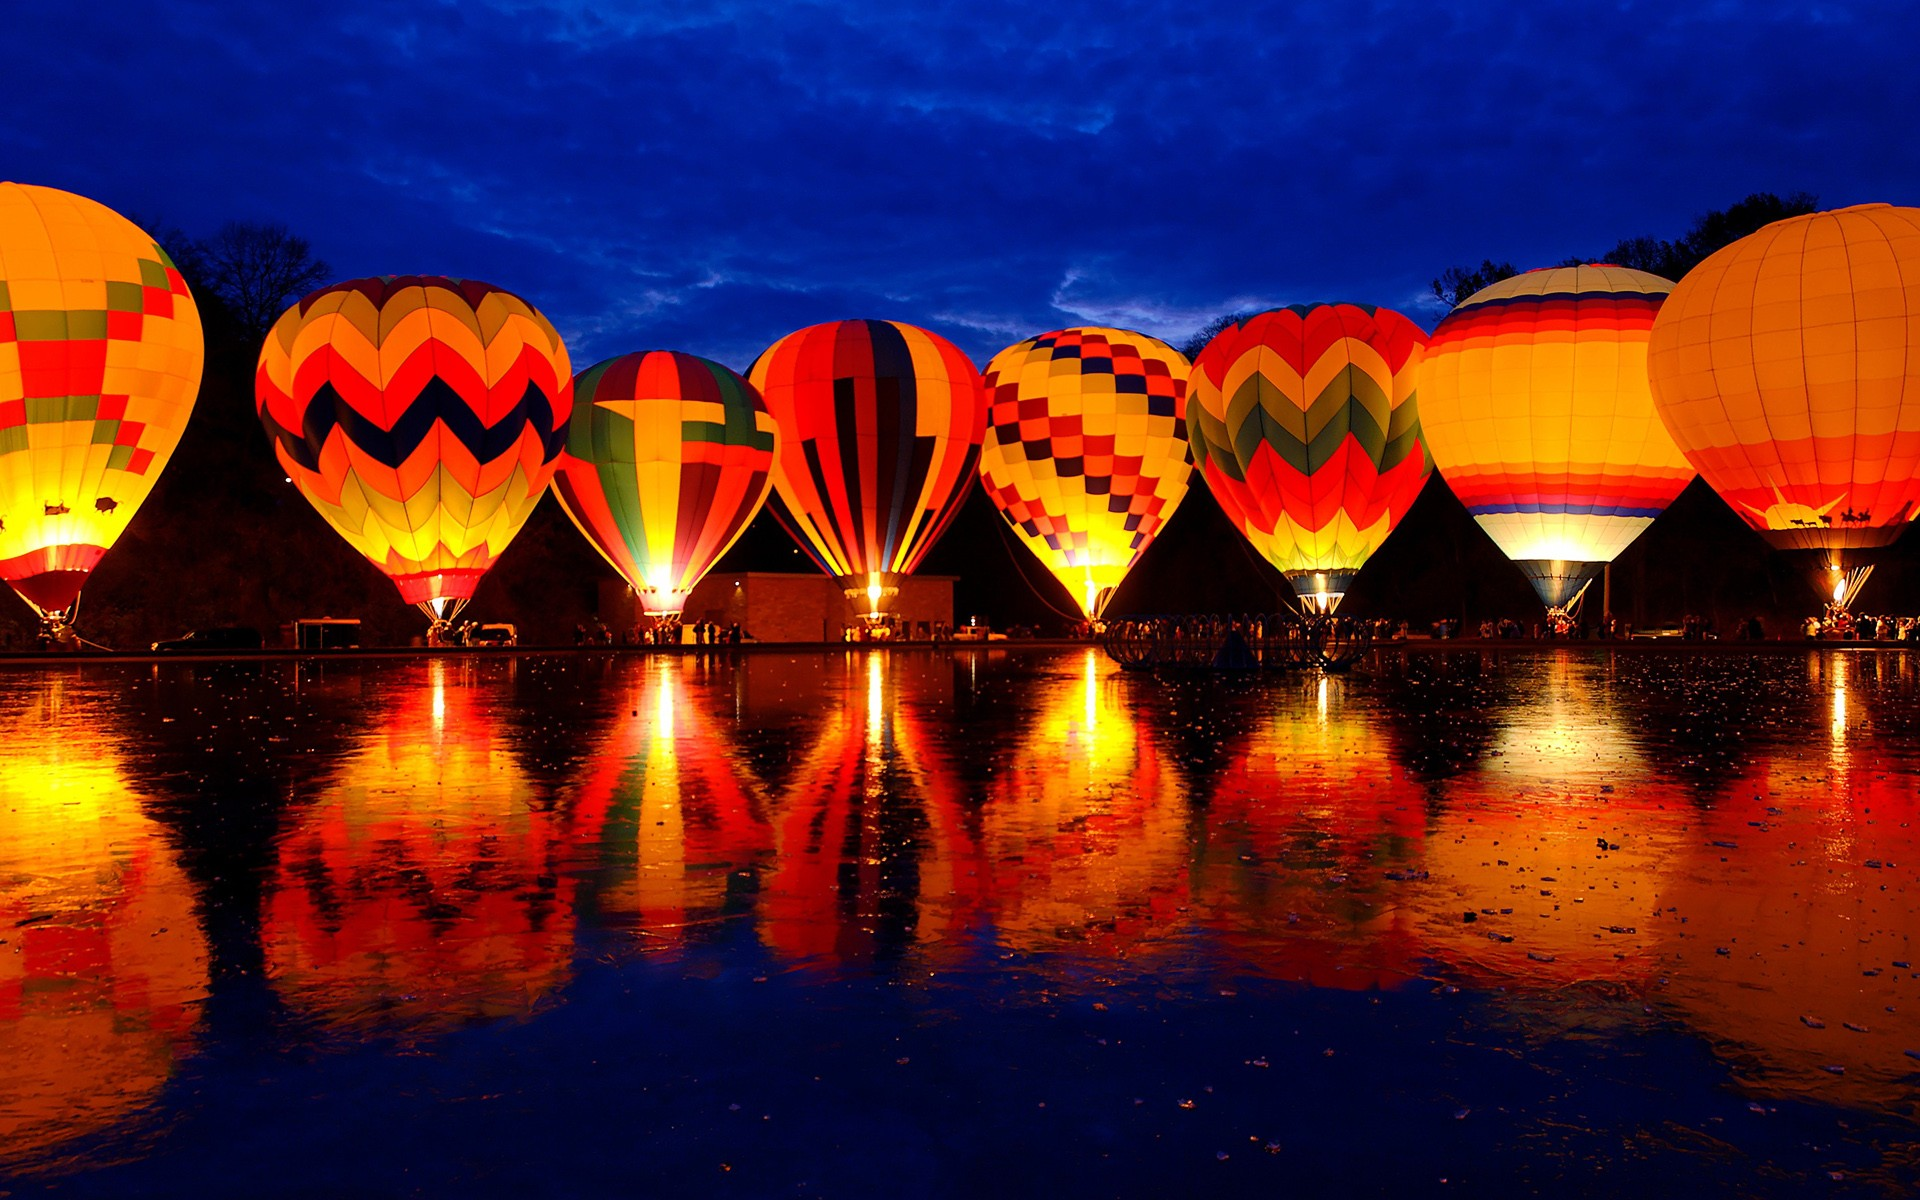 Balloons 3d Live Wallpaper Hot Air Balloon 2 Hd Others 4k Wallpapers Images